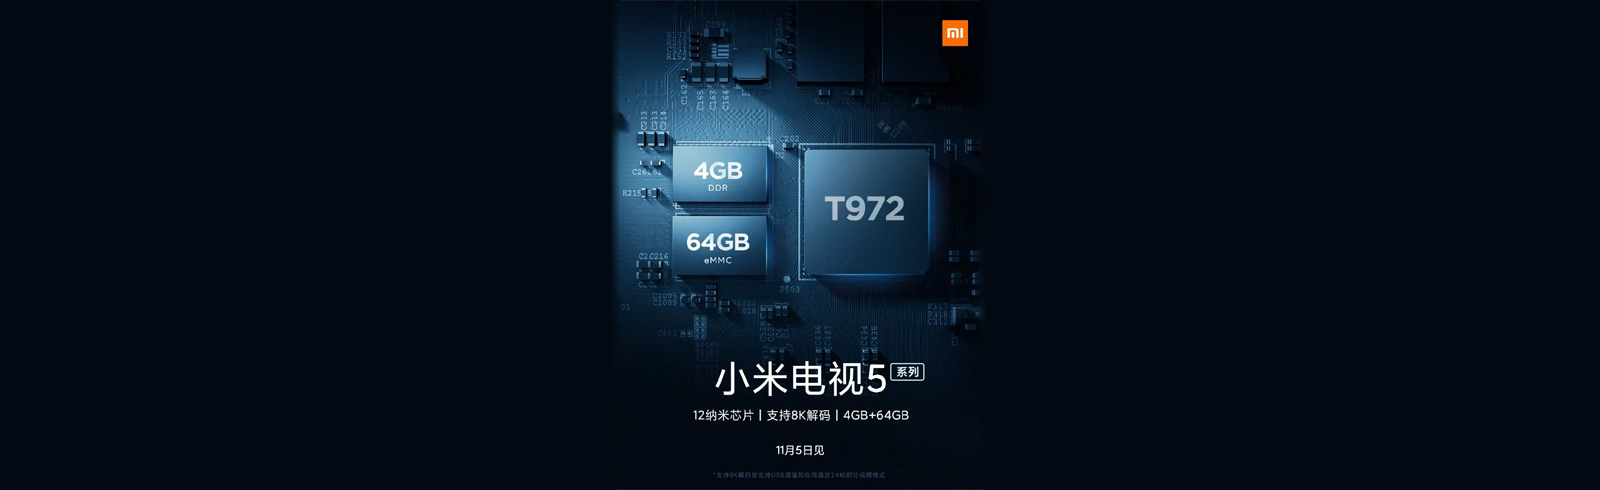 Xiaomi Mi TV 5 will pack a T972 chipset, 4GB of RAM, 64GB of storage